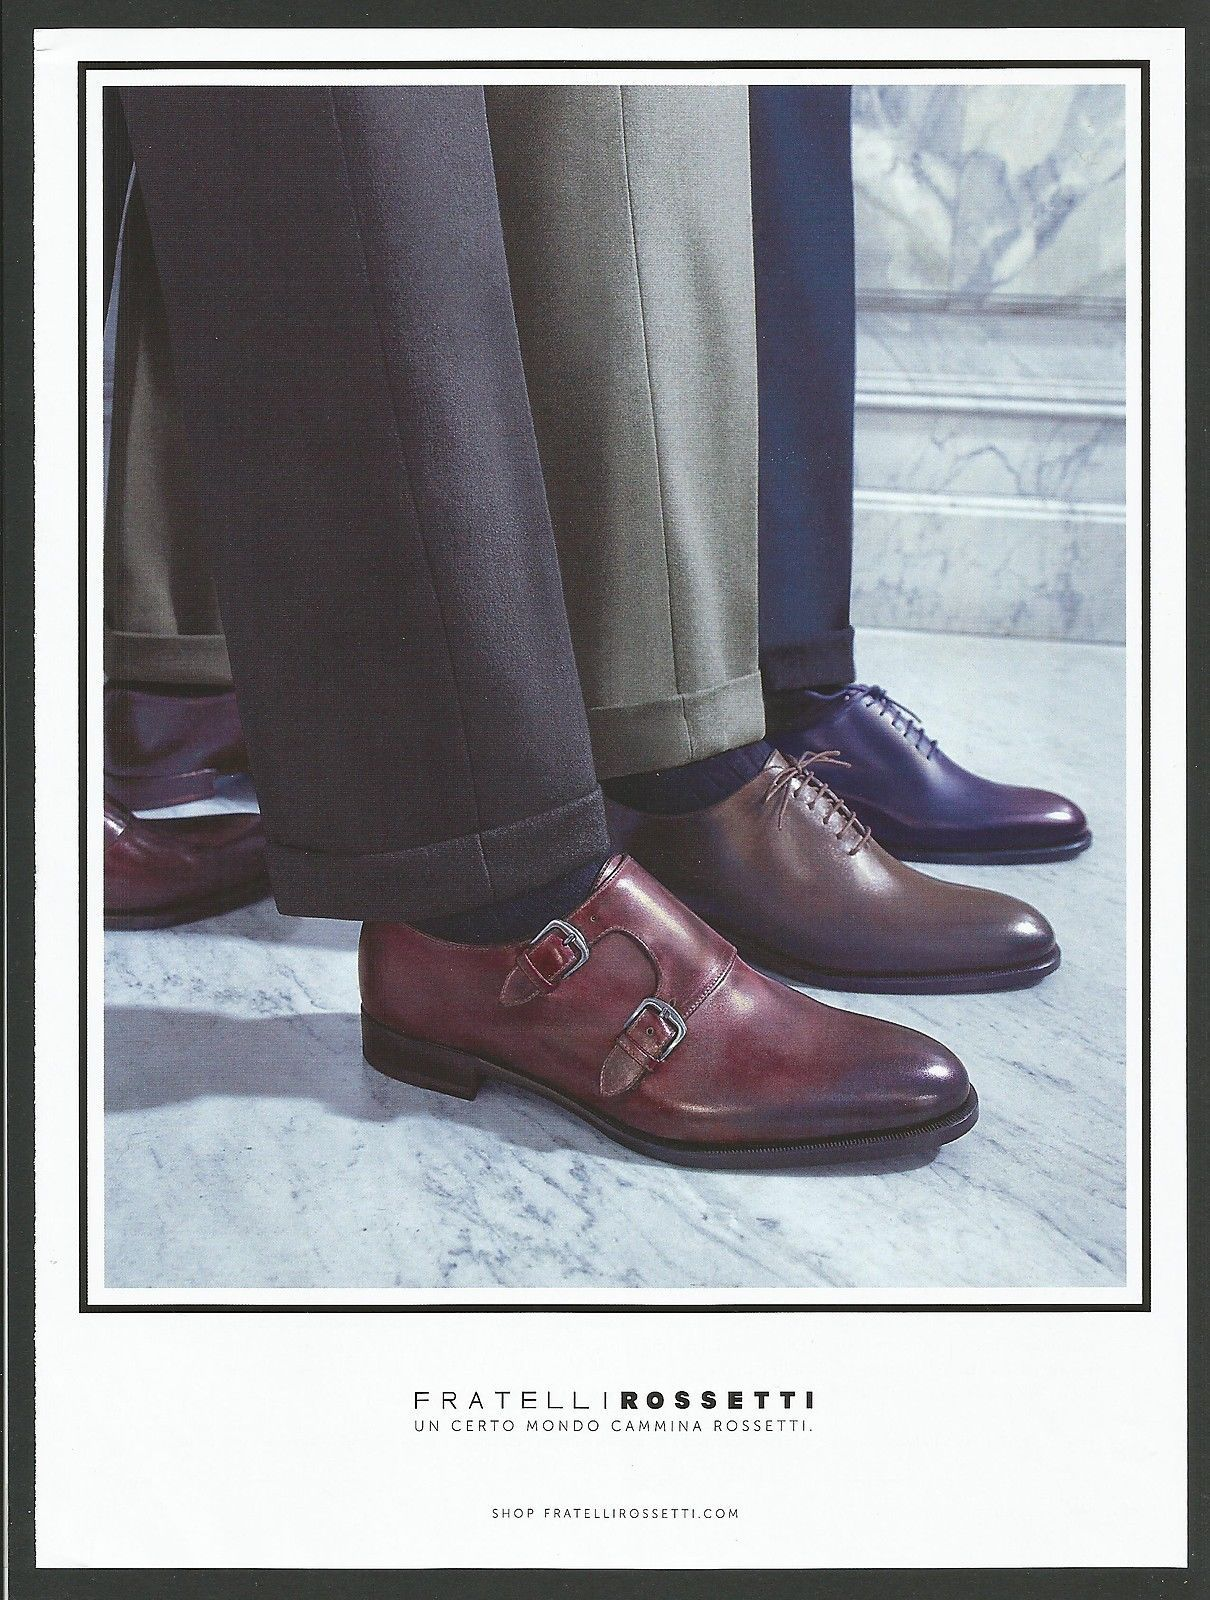 FRATELLI ROSSETTI Luxury Shoes Print Ad # 24 4 • $5.99